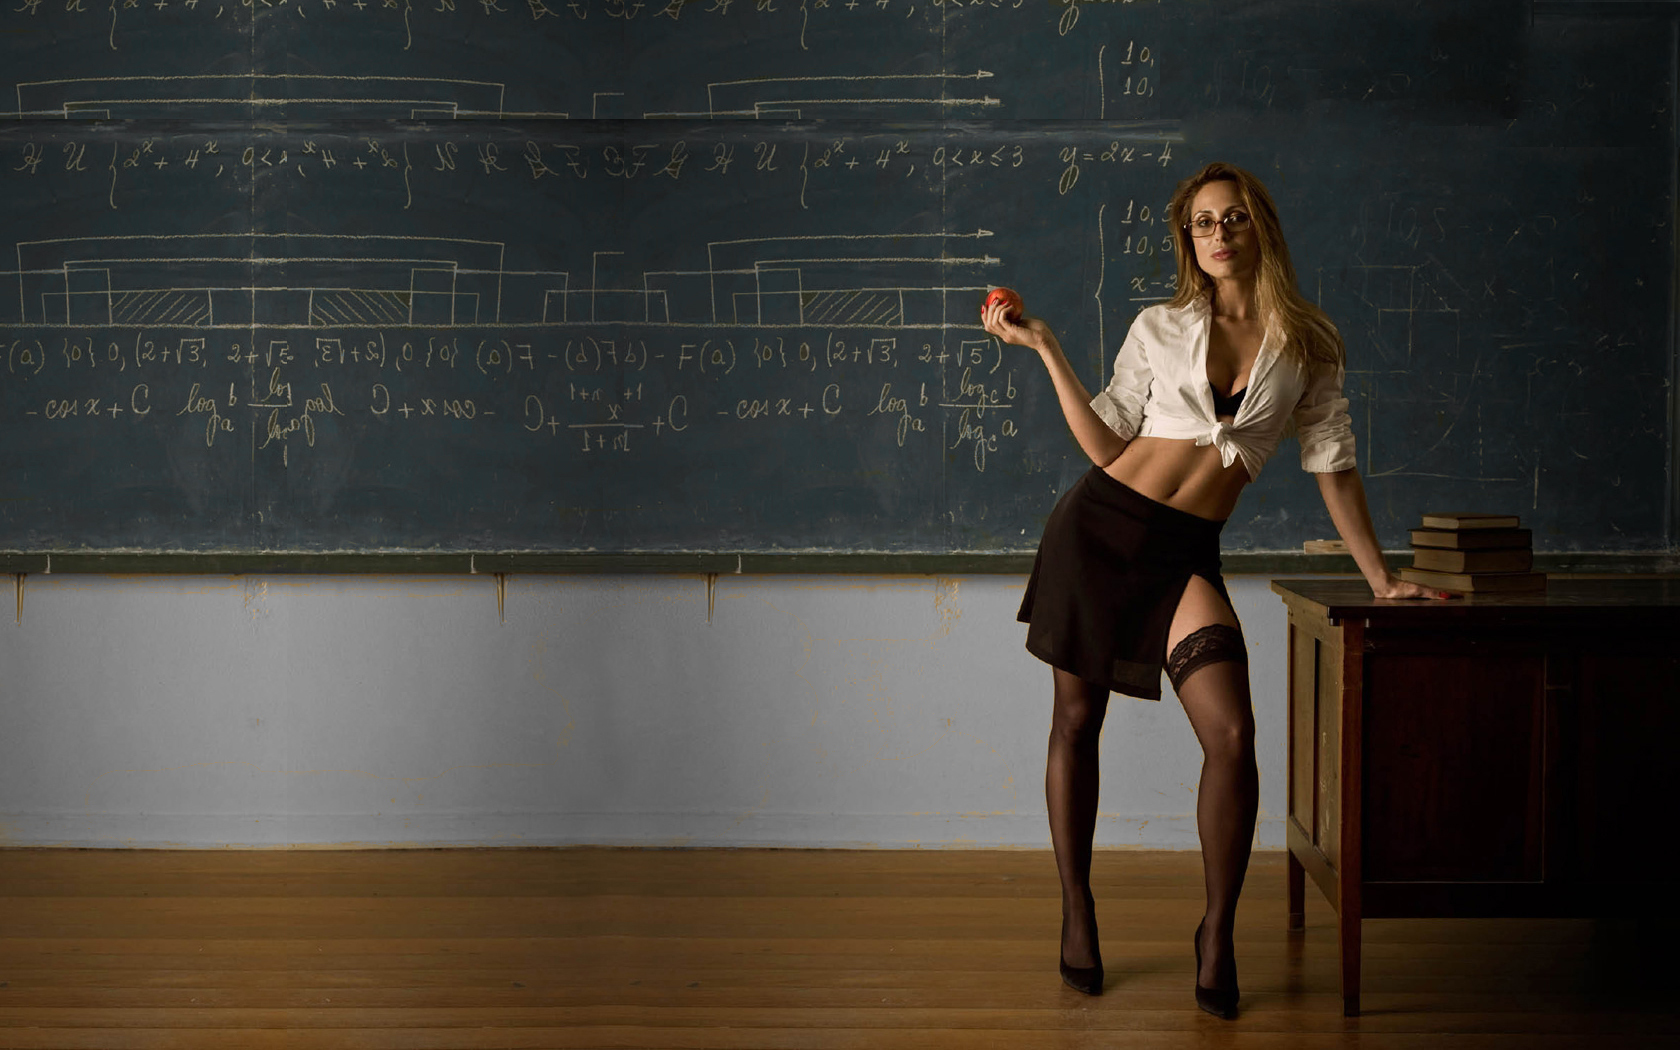 woman stockings teachers apples HD Wallpaper